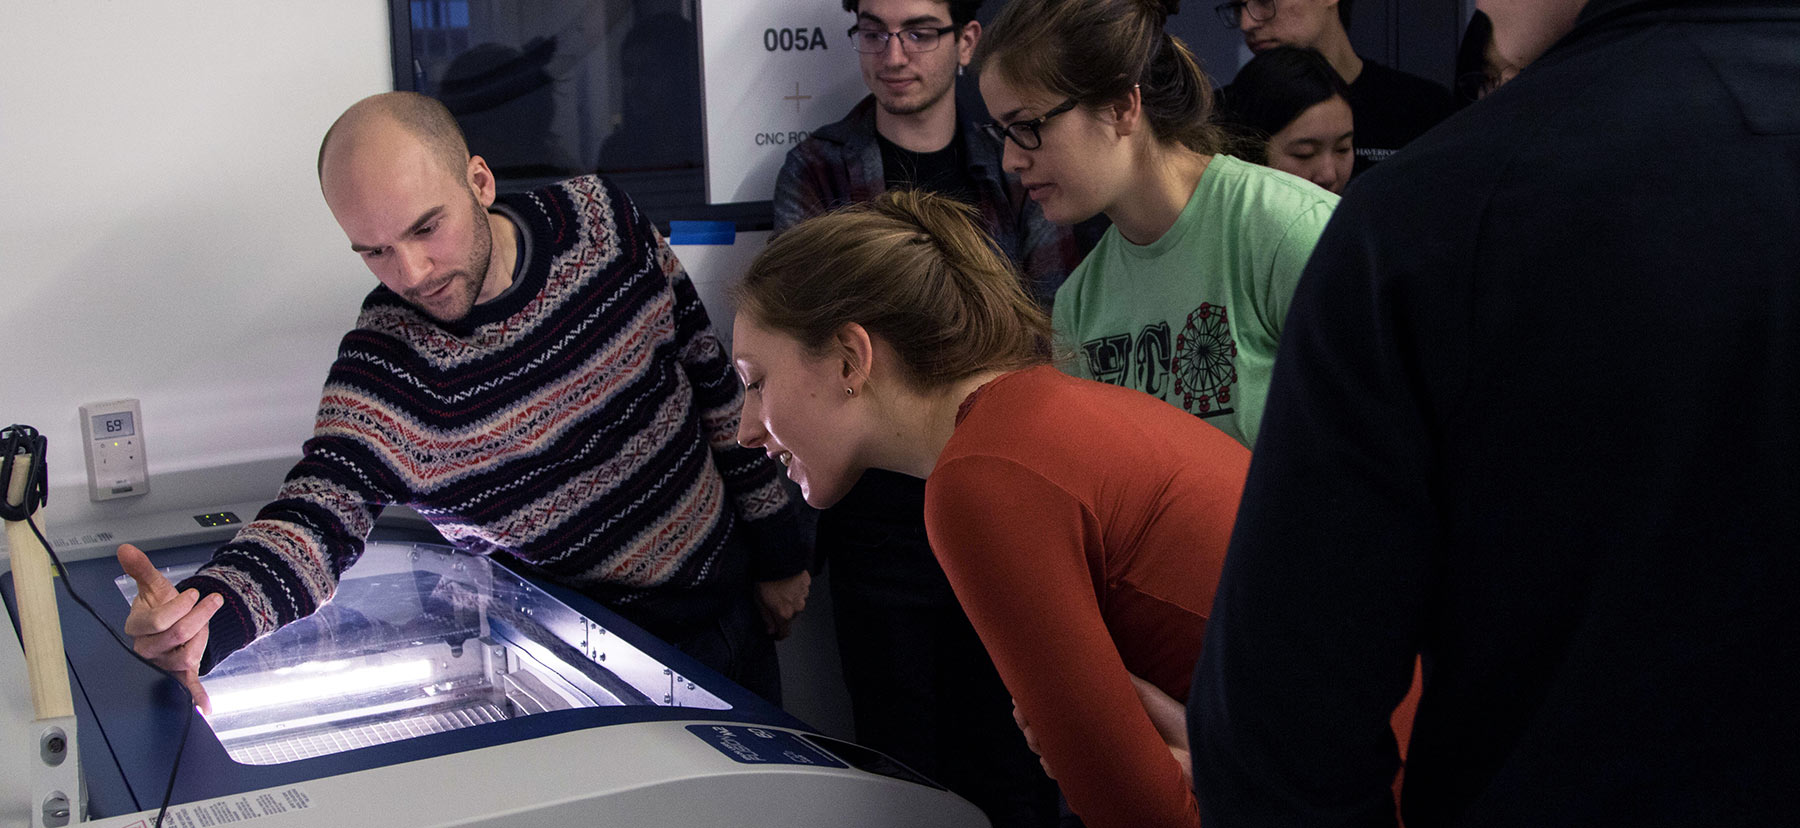 A group examines a large laser cutter